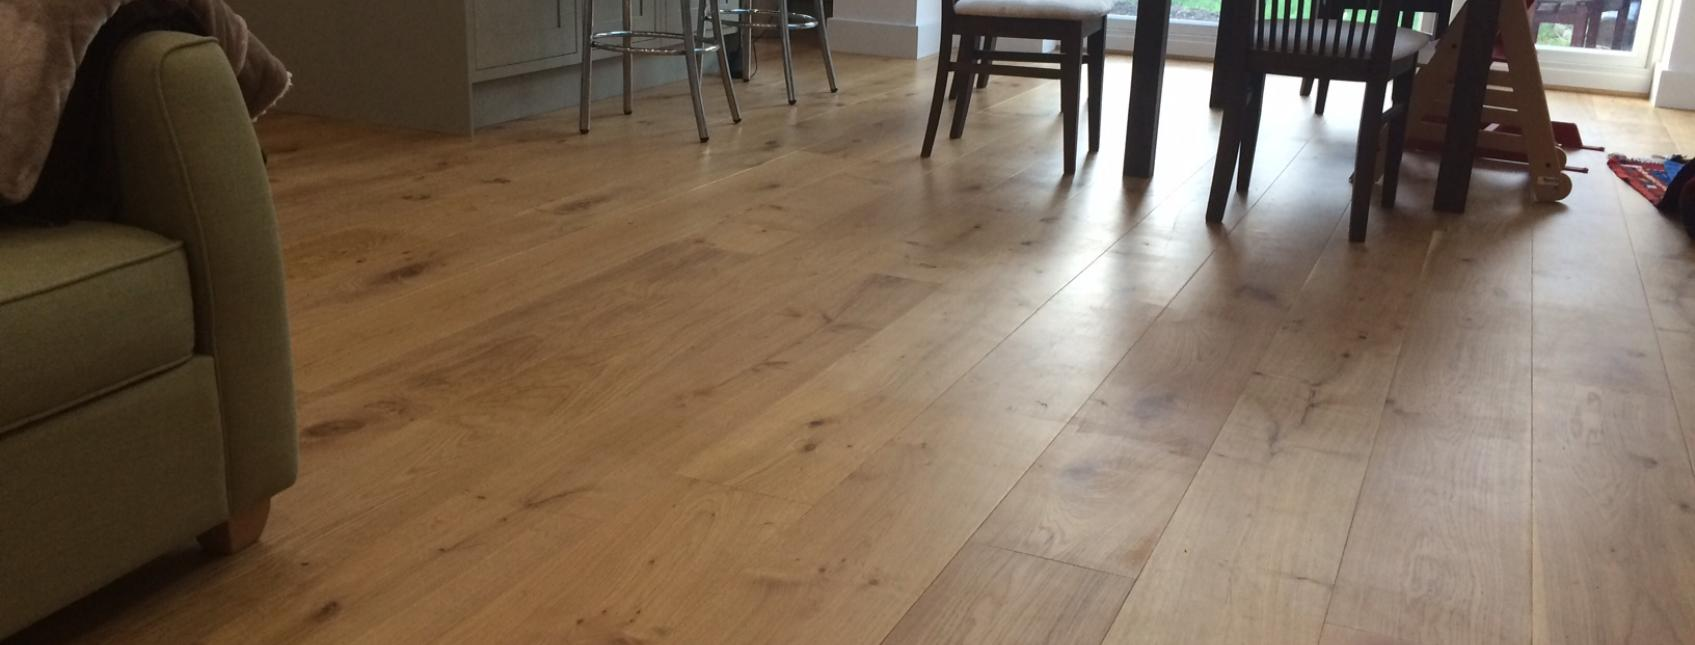 Engineered wood flooring in a house in Harrow, North London